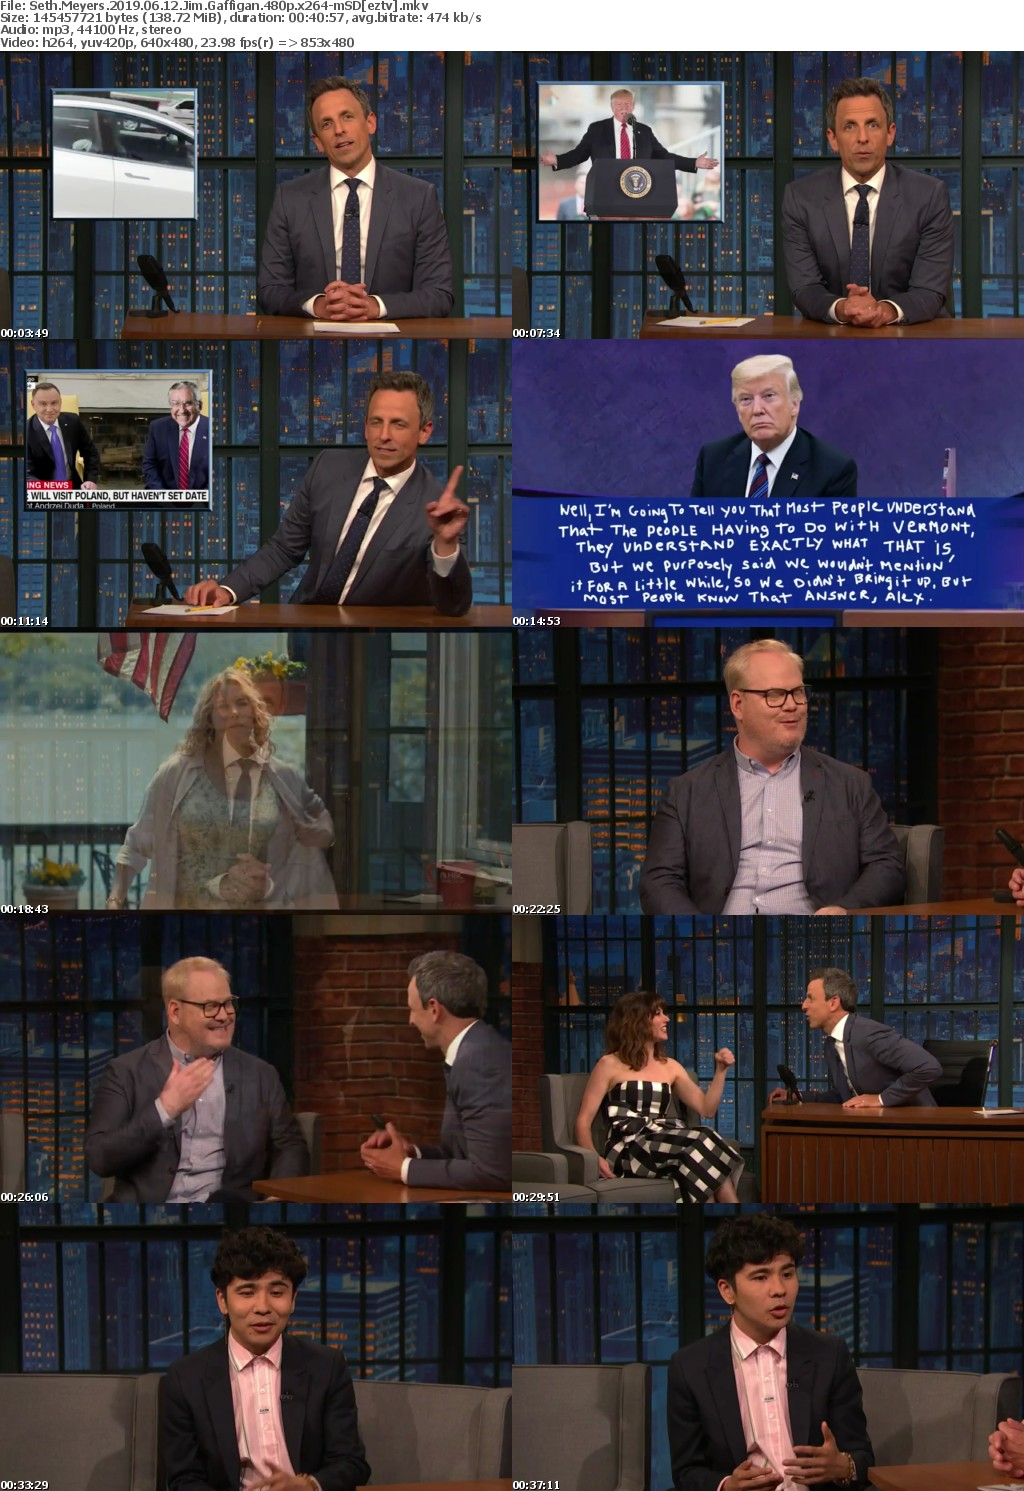 Seth Meyers 2019 06 12 Jim Gaffigan 480p x264-mSD